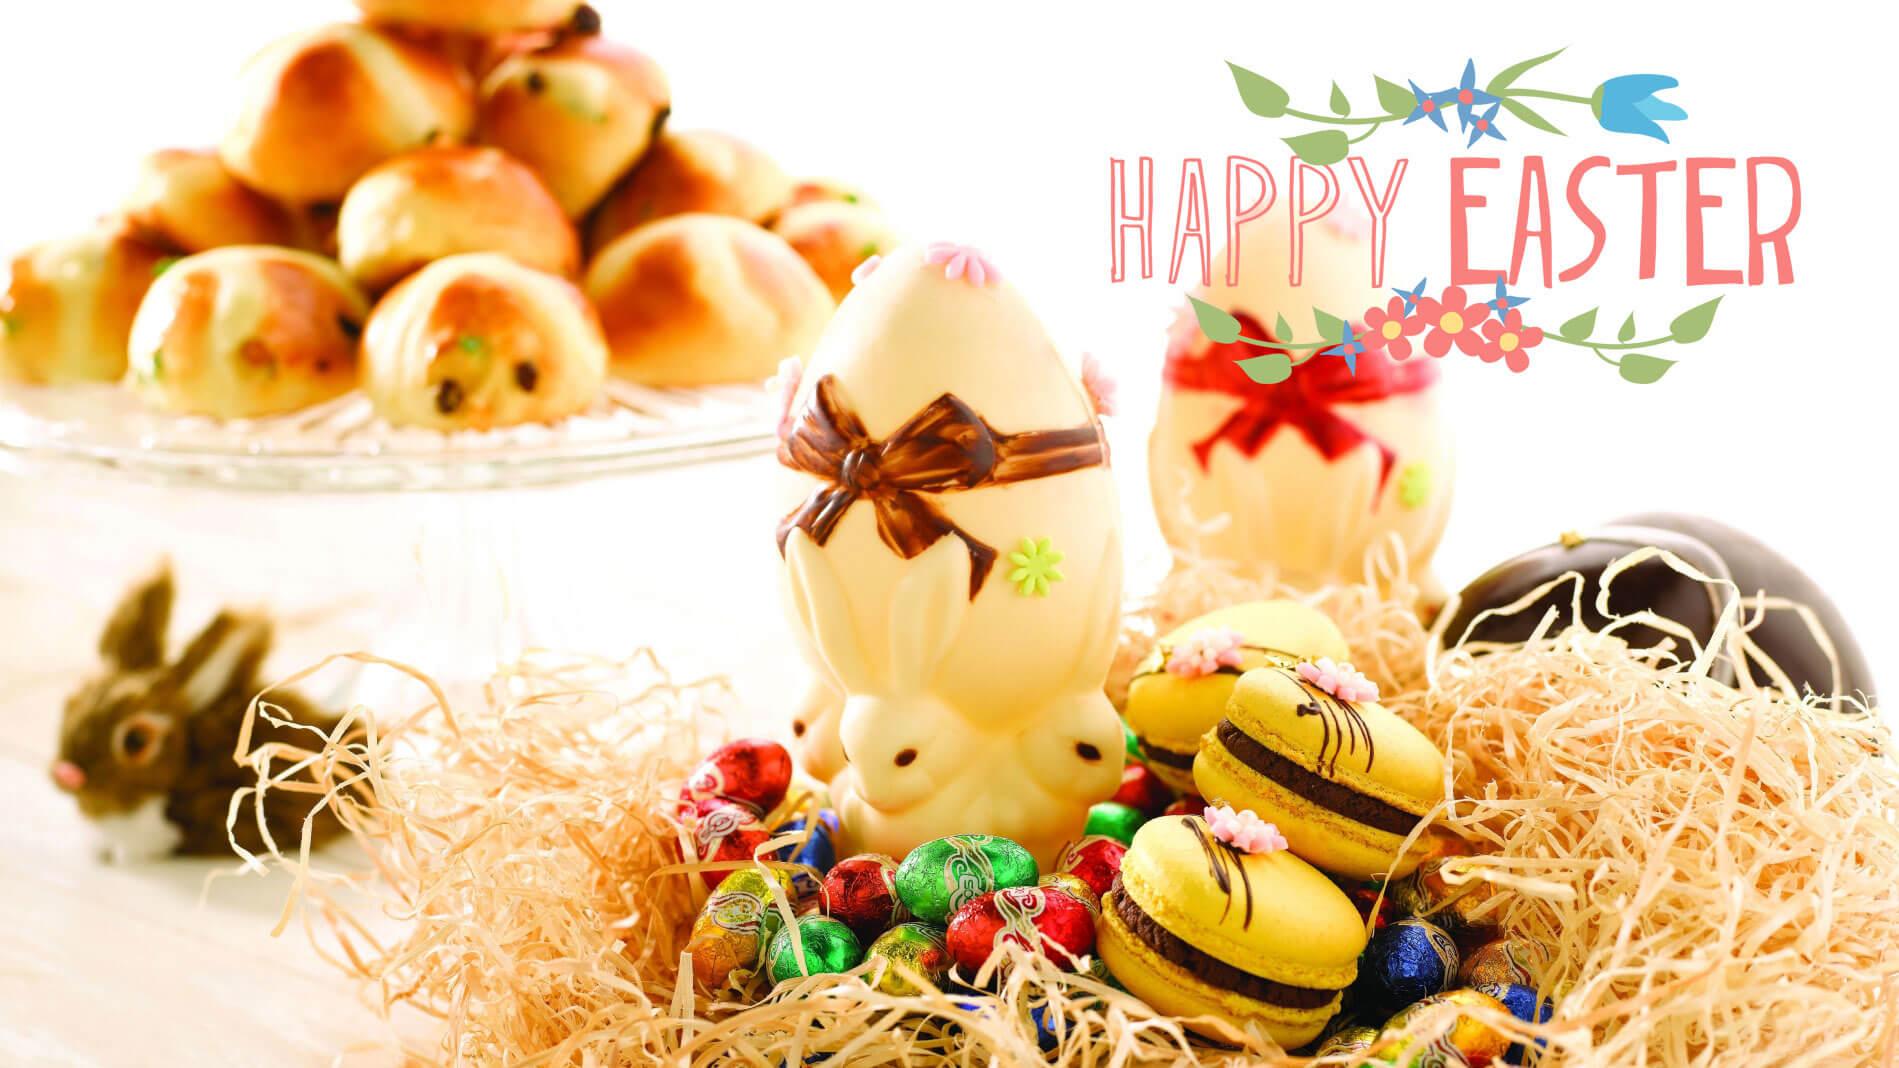 happy easter eggs bunny donut chocolates hd wallpaper